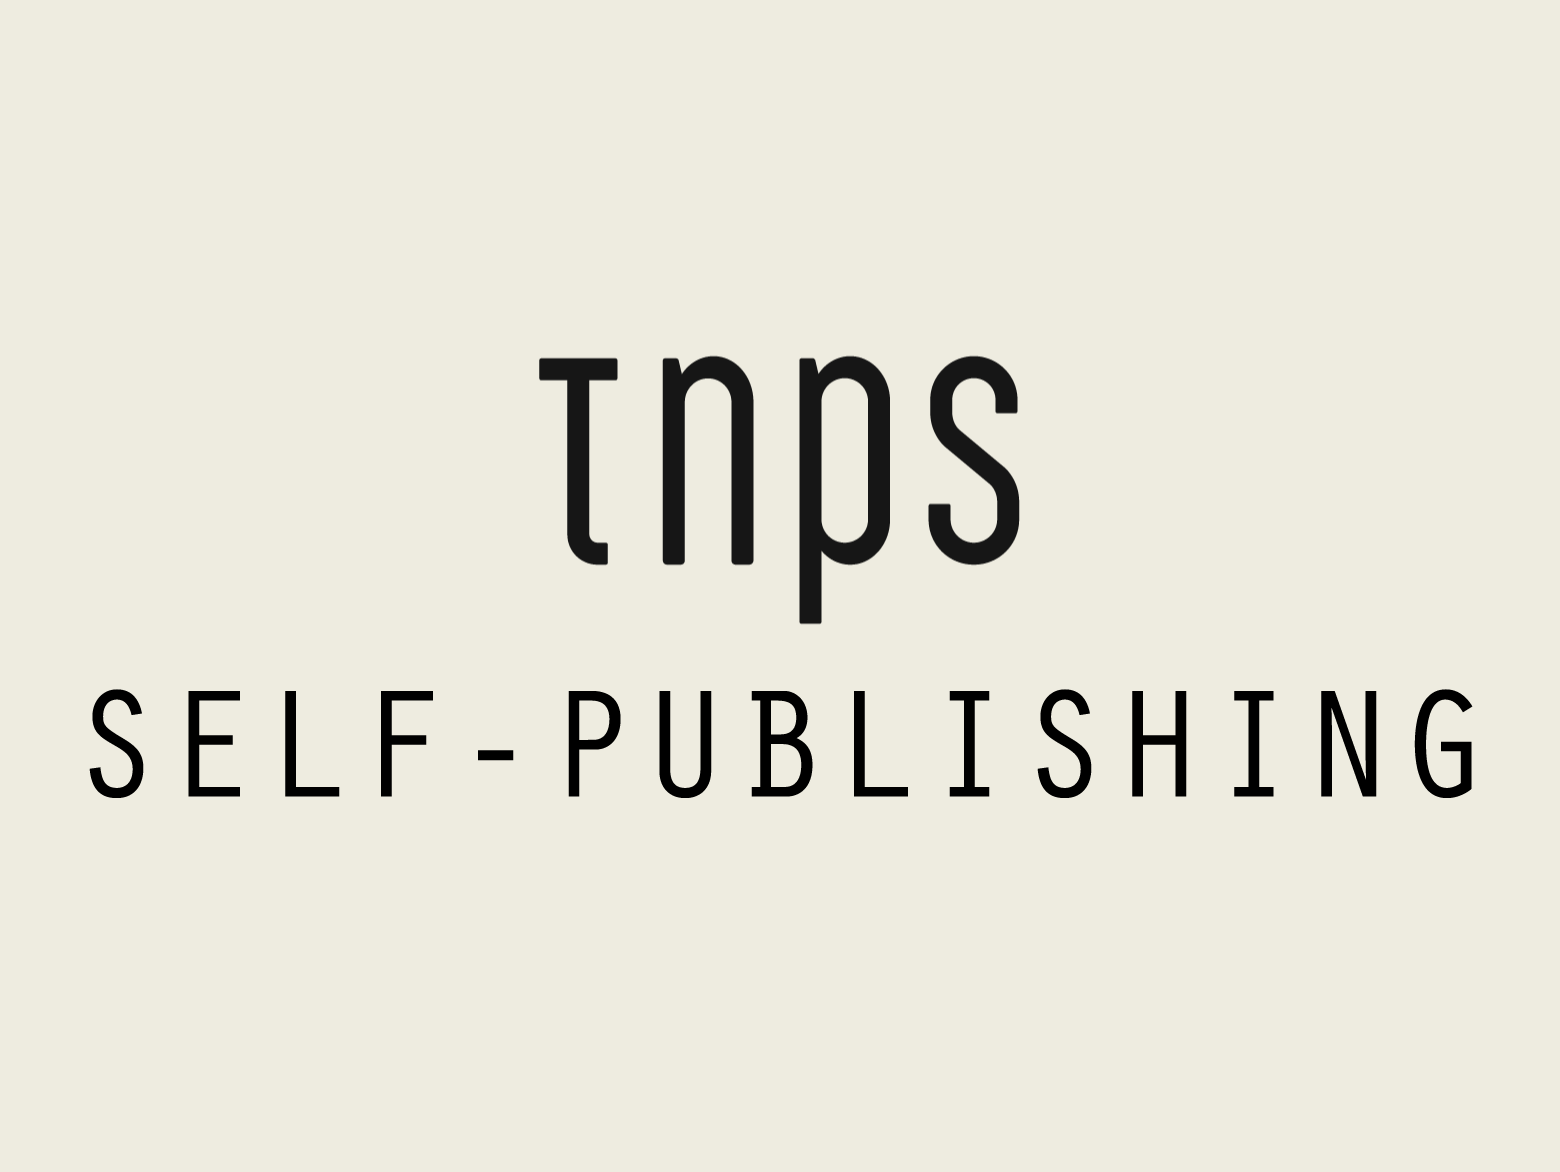 Barnes & Noble removes manuscript editor from NookPress